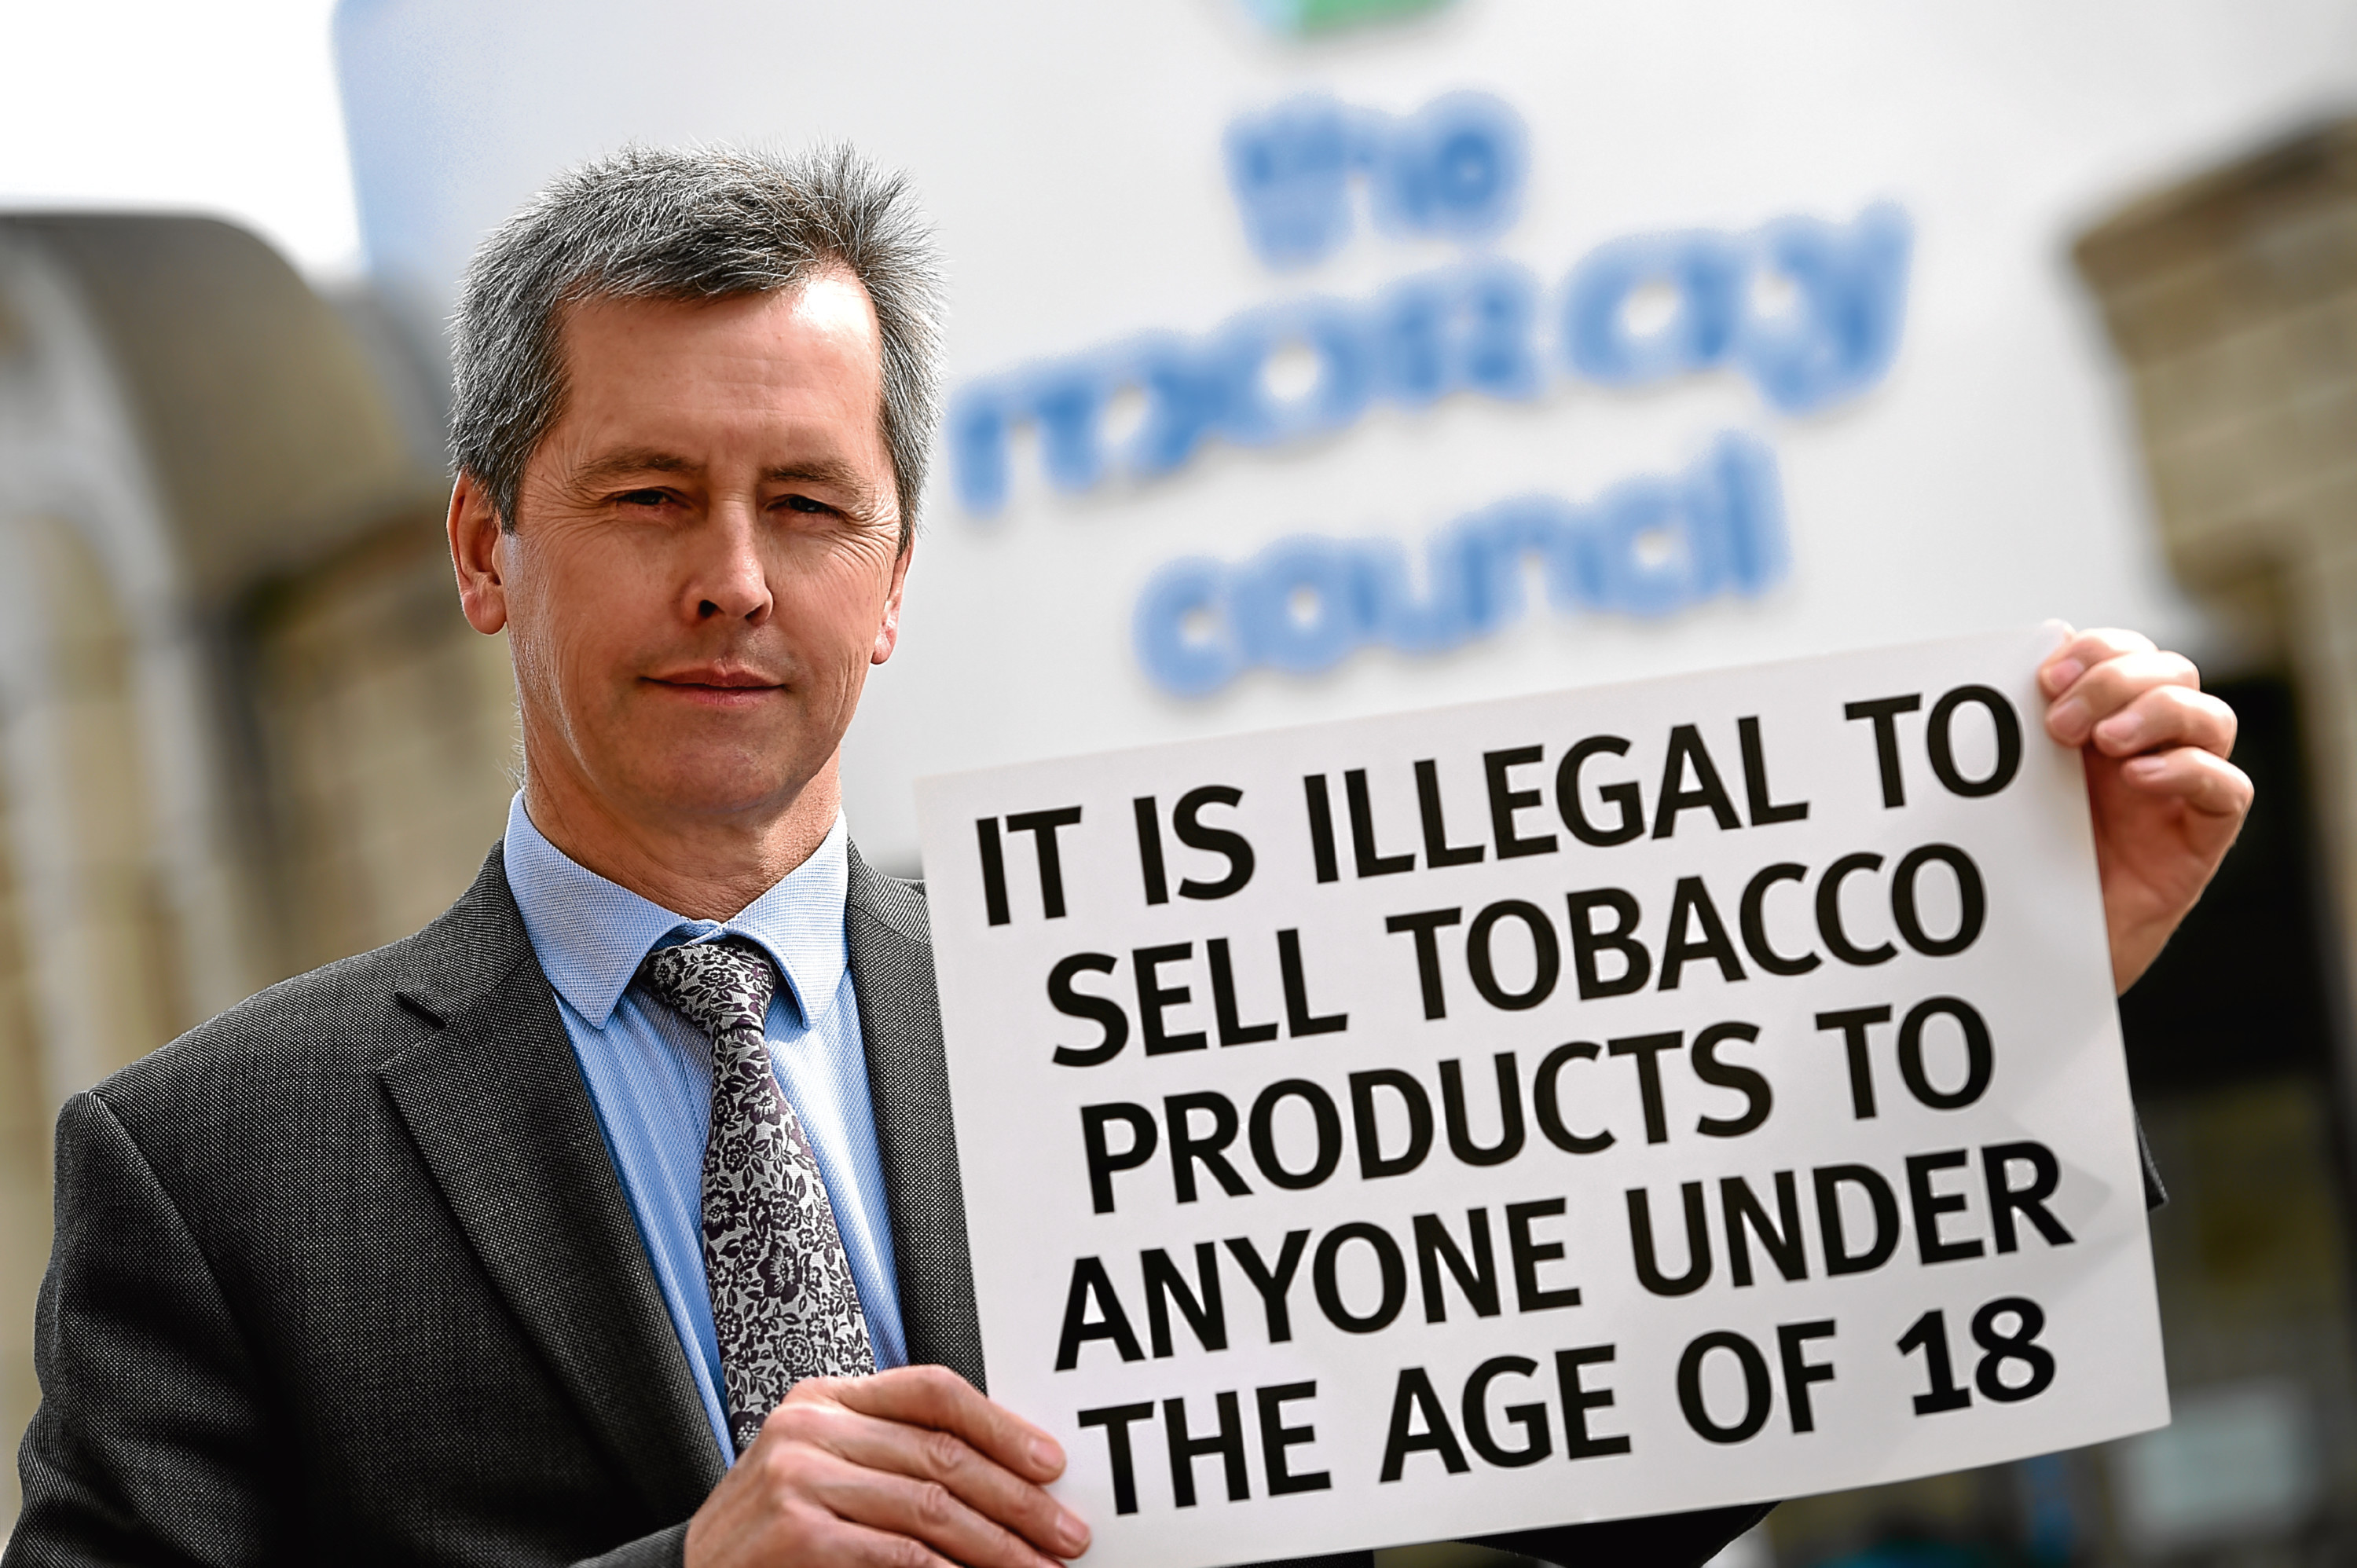 Manager of Trading Standards at Moray Council, Peter Adamson.